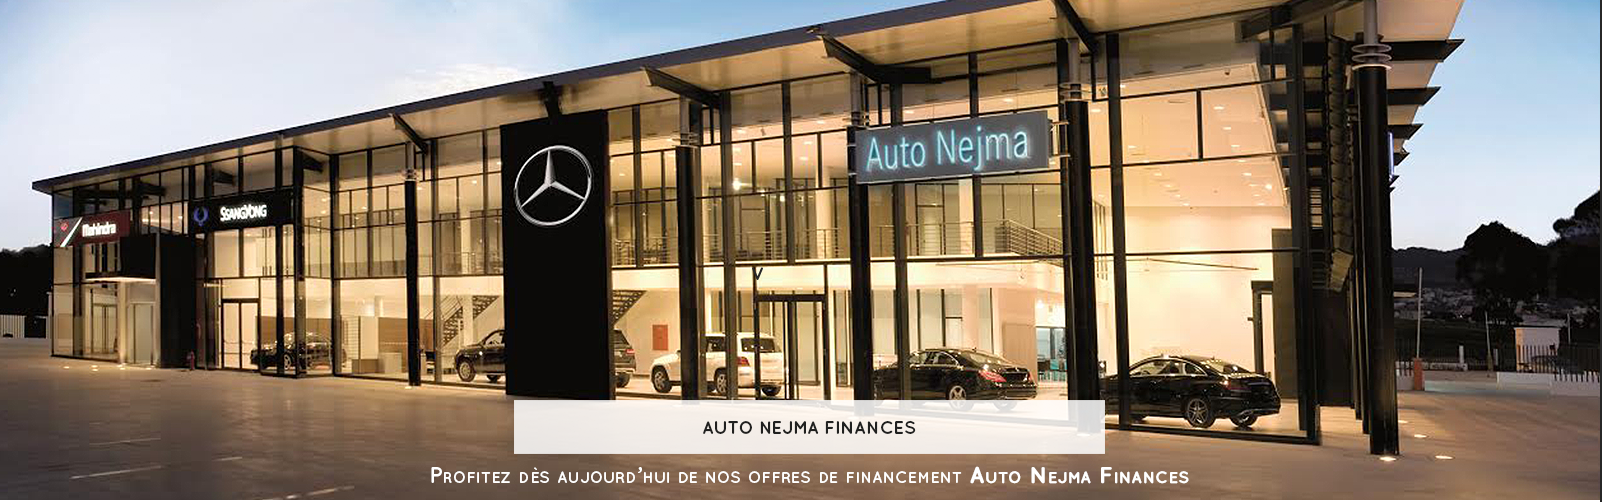 Auto Nejma finance